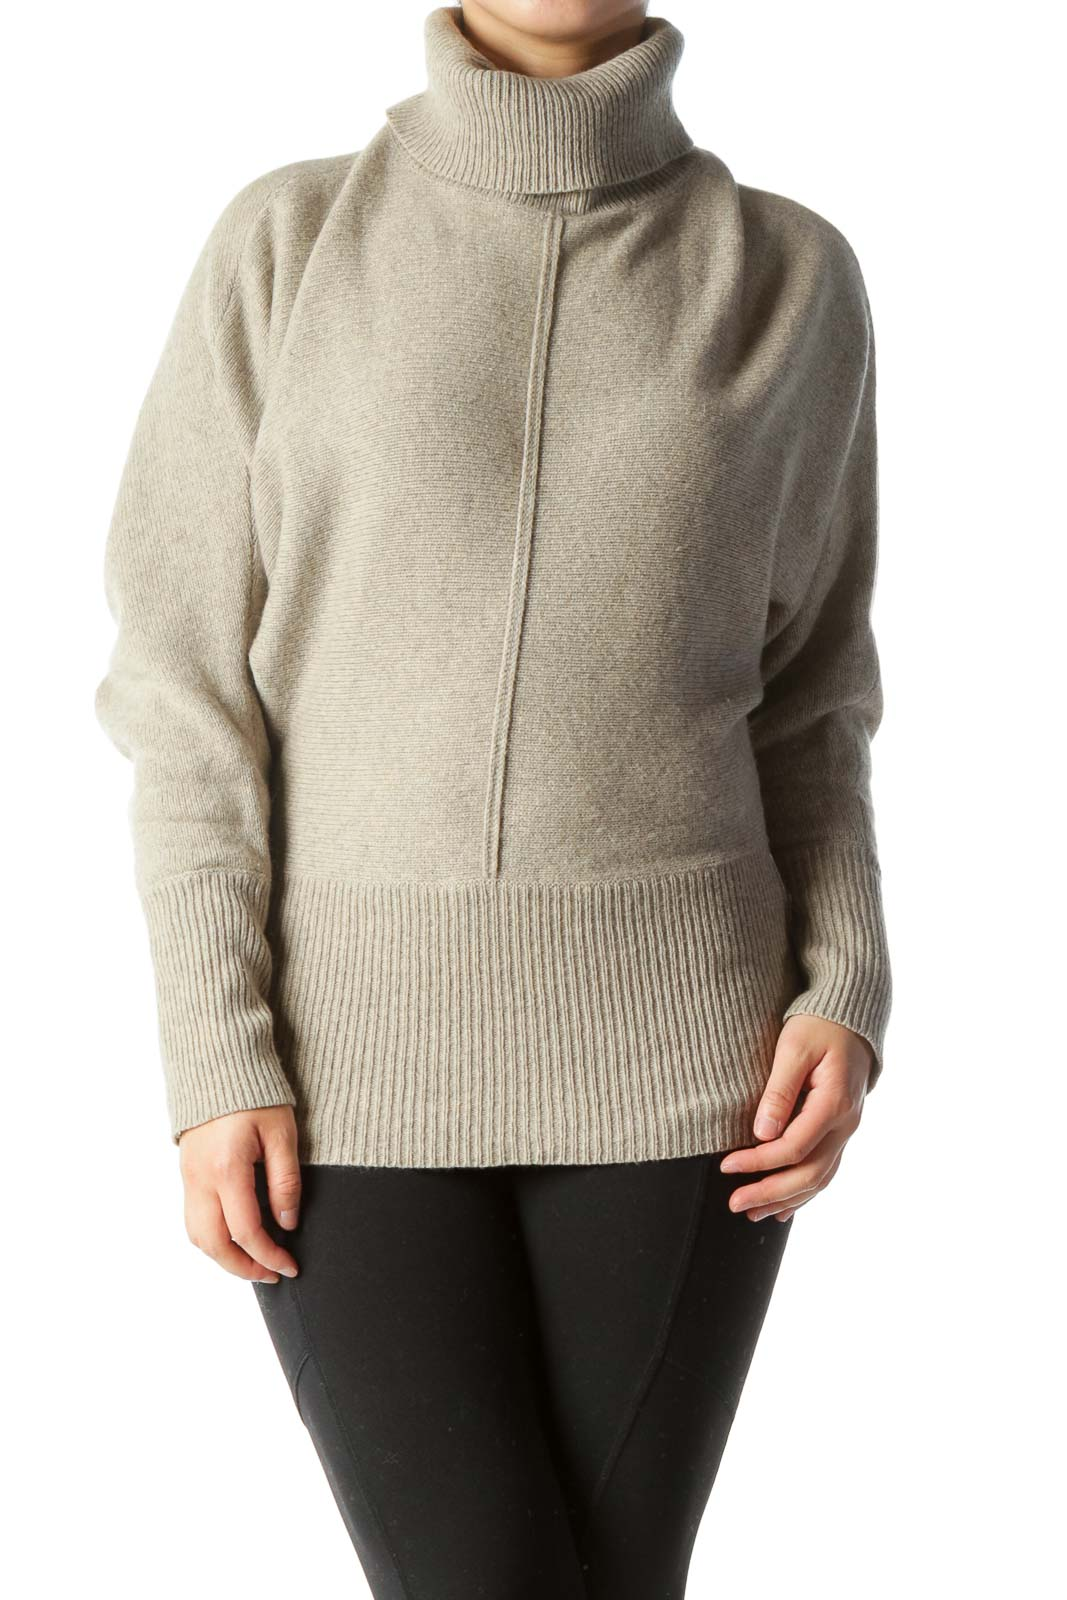 Beige Gray Turtle Neck Bat-Sleeve Slim-Waist Knit Sweater